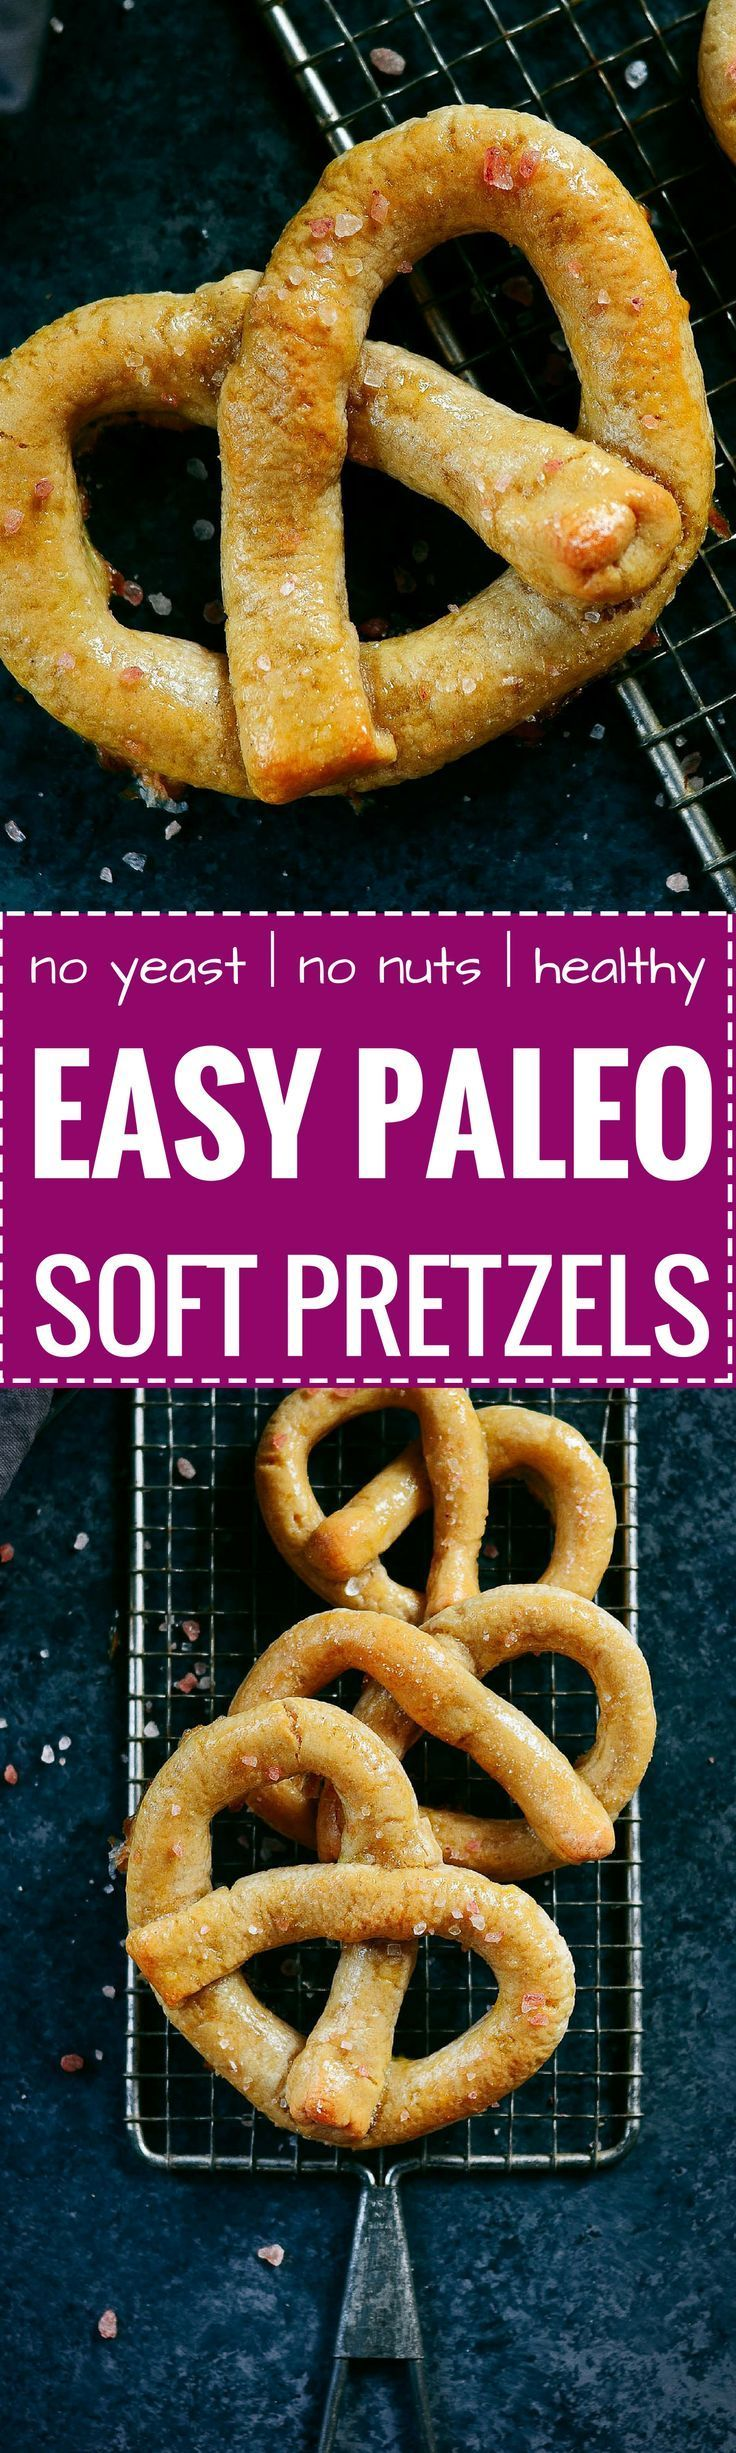 Best easy paleo soft pretzels are timeless and taste like the real deal! An easy grain free recipe for soft pretzels. Gluten free, dairy free, and no yeast!